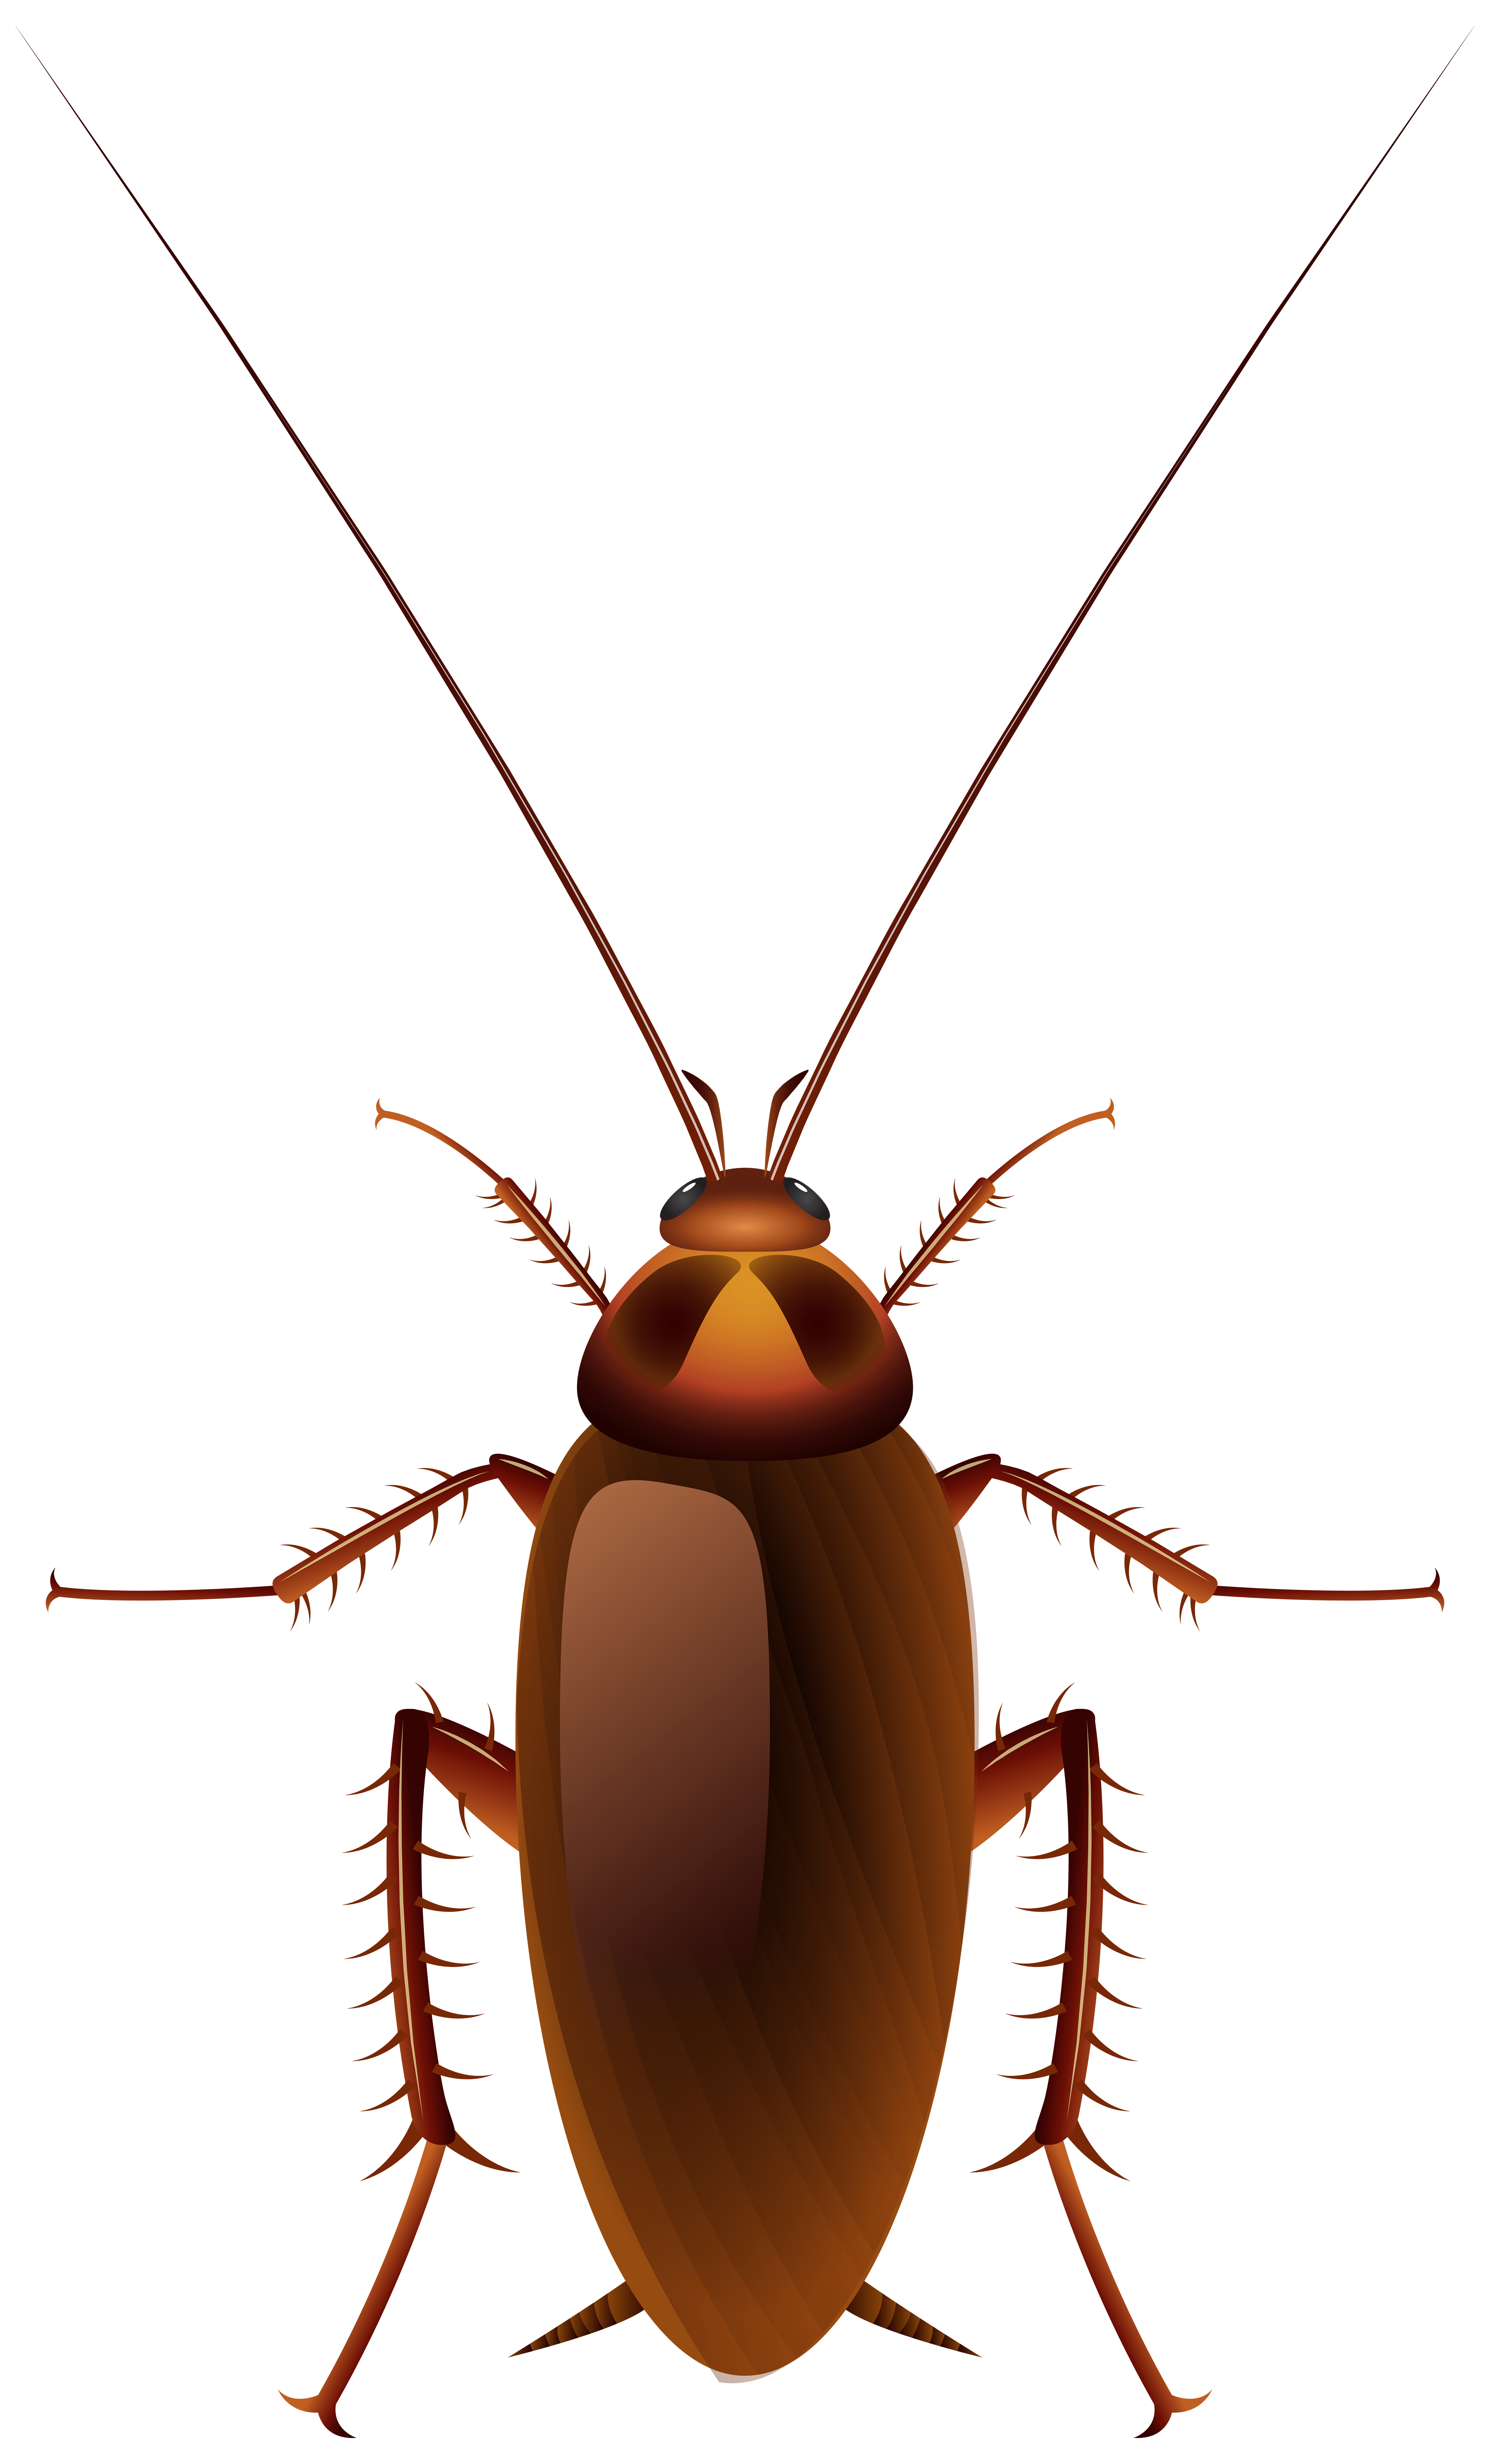 Cockroach clipart #2, Download drawings